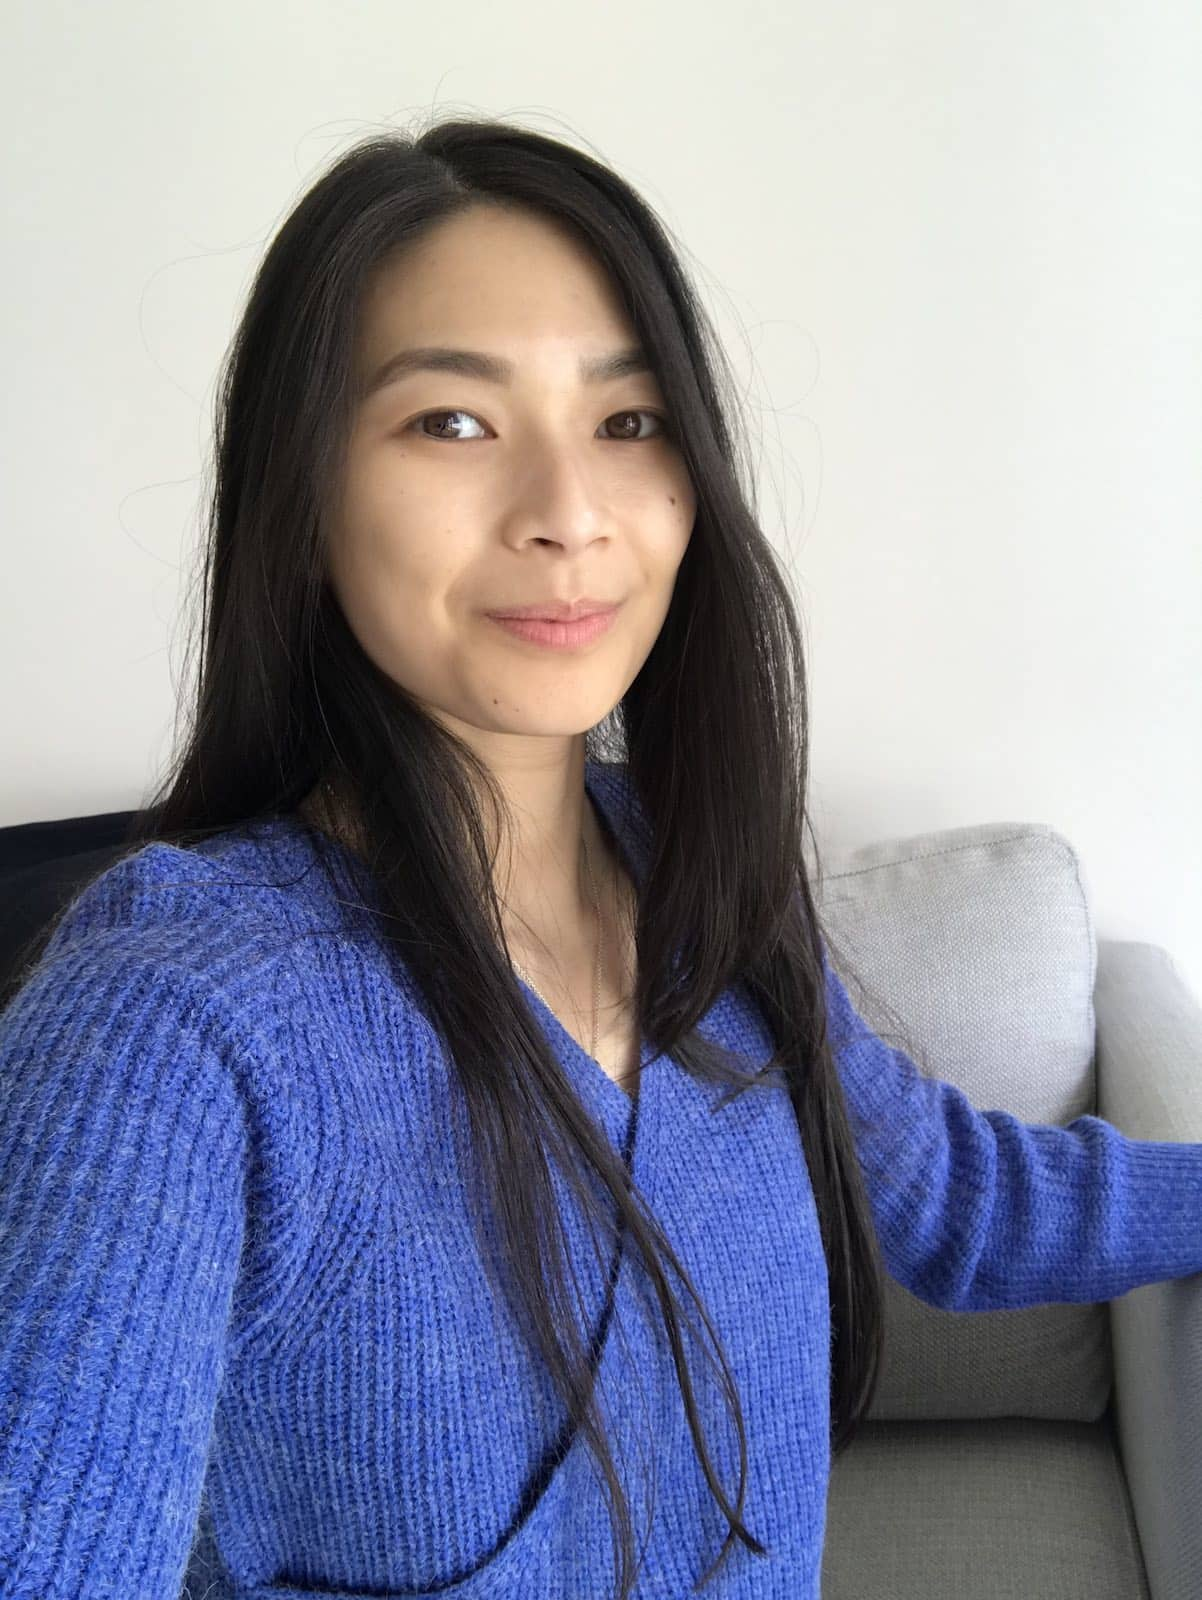 A woman with long dark hair, taking a selfie. She is wearing a blue wrap-front top in a textured knitted fabric